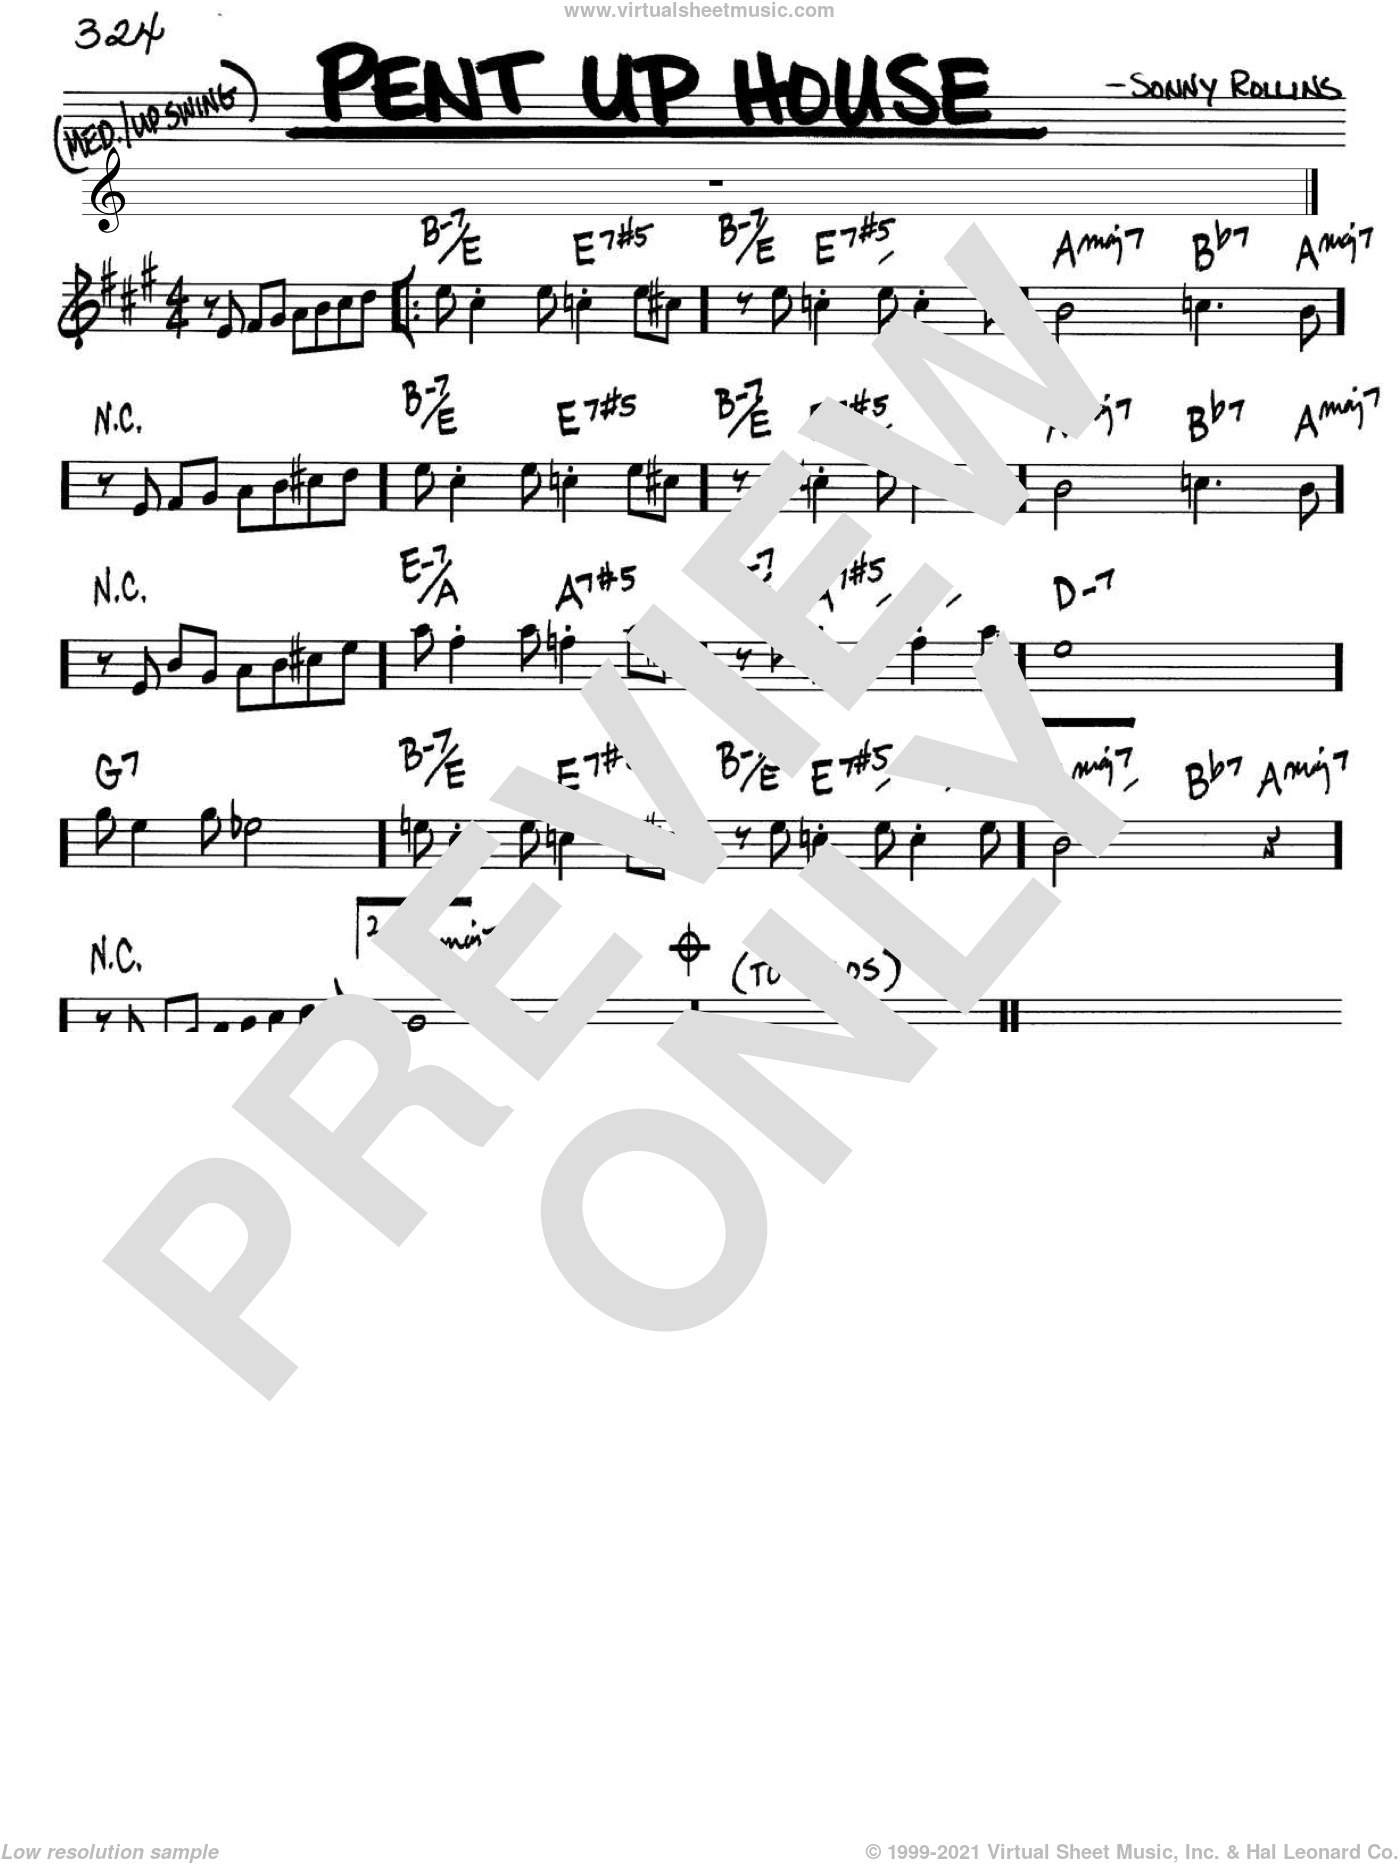 Pent Up House sheet music for voice and other instruments (in Bb) by Sonny Rollins, intermediate skill level